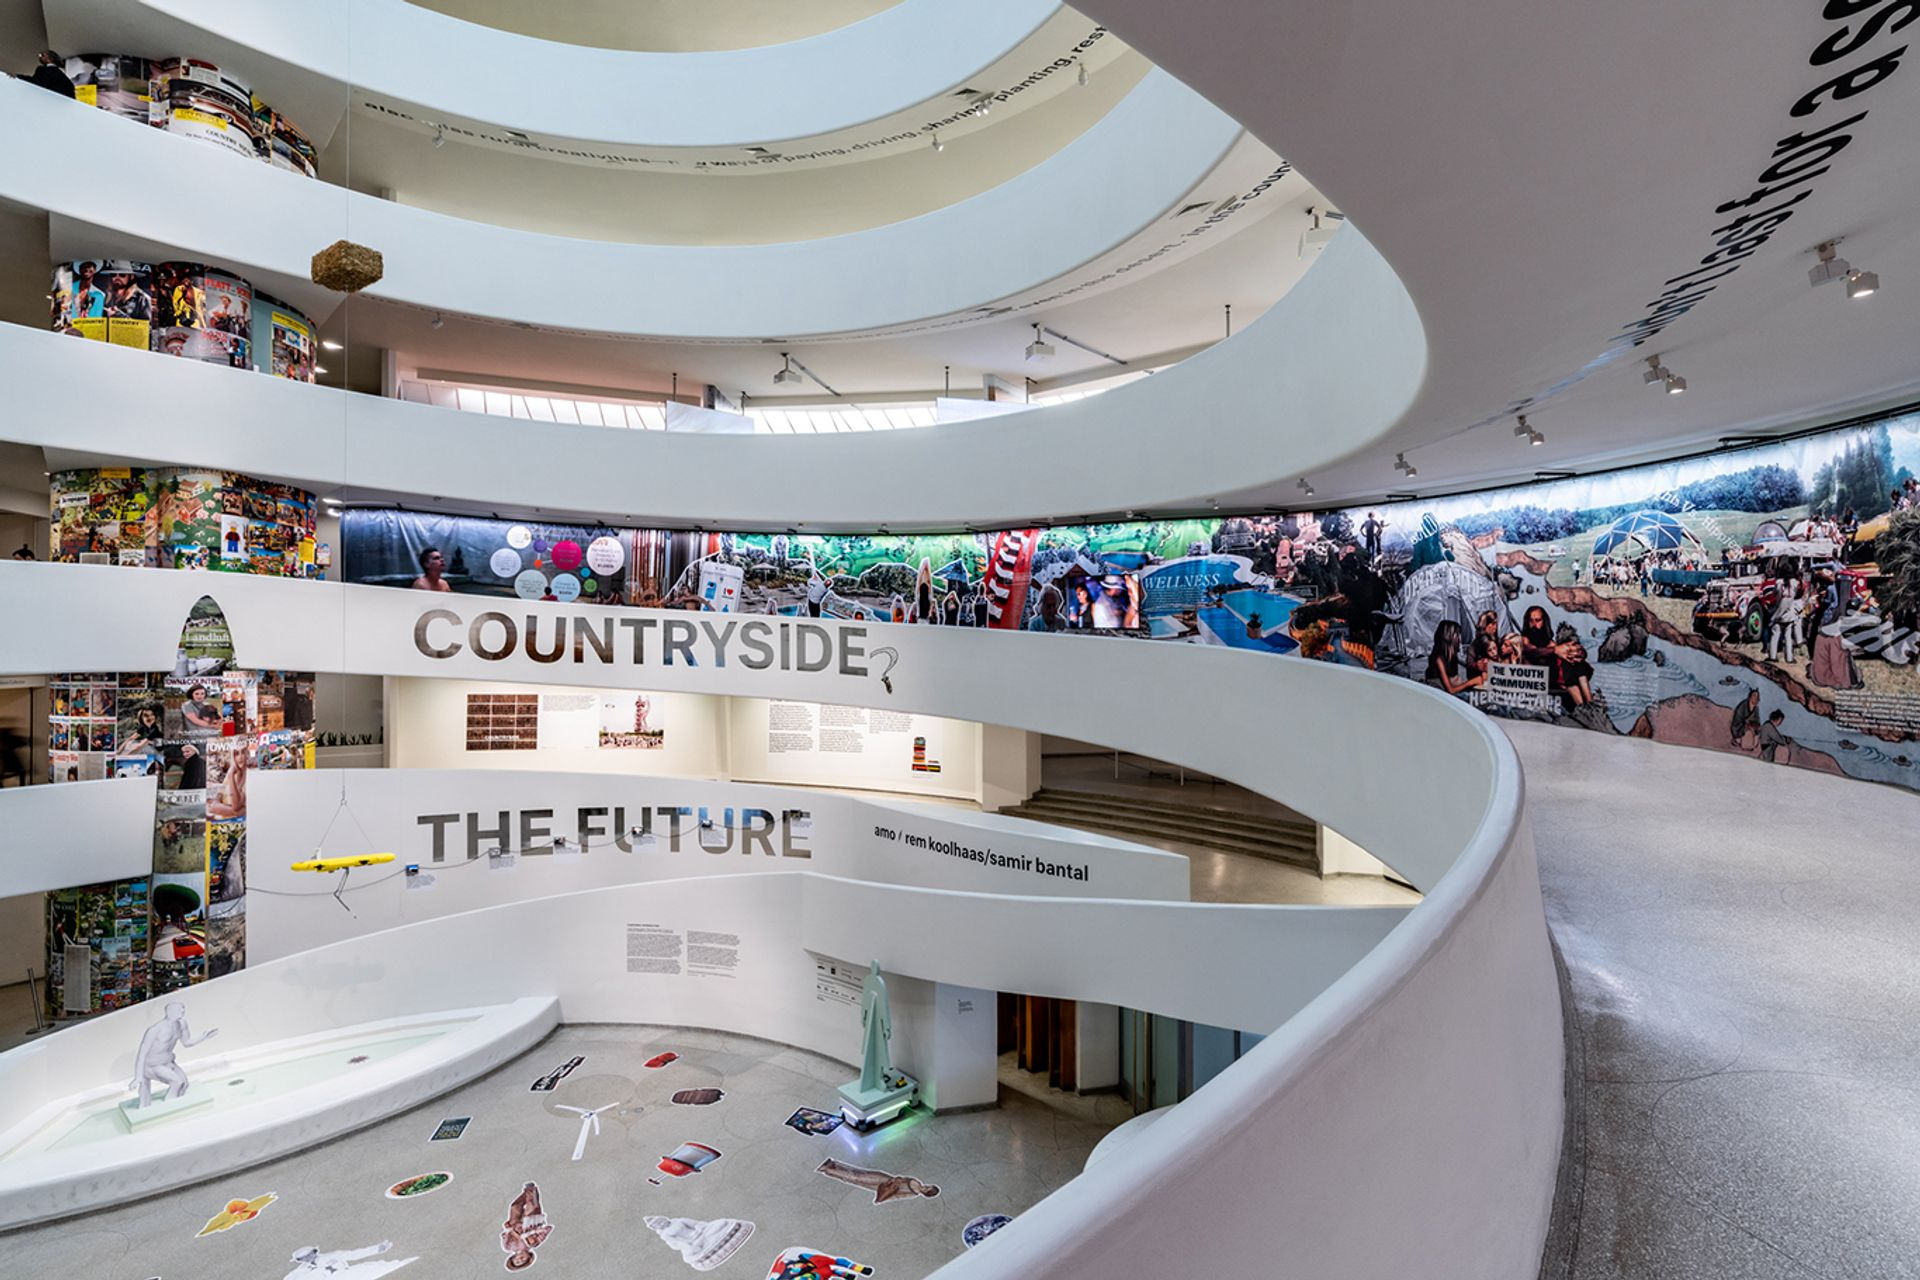 An installation view of Countryside, The Future at the Solomon R. Guggenheim Museum in New York David Heald/© Solomon R. Guggenheim Foundation.